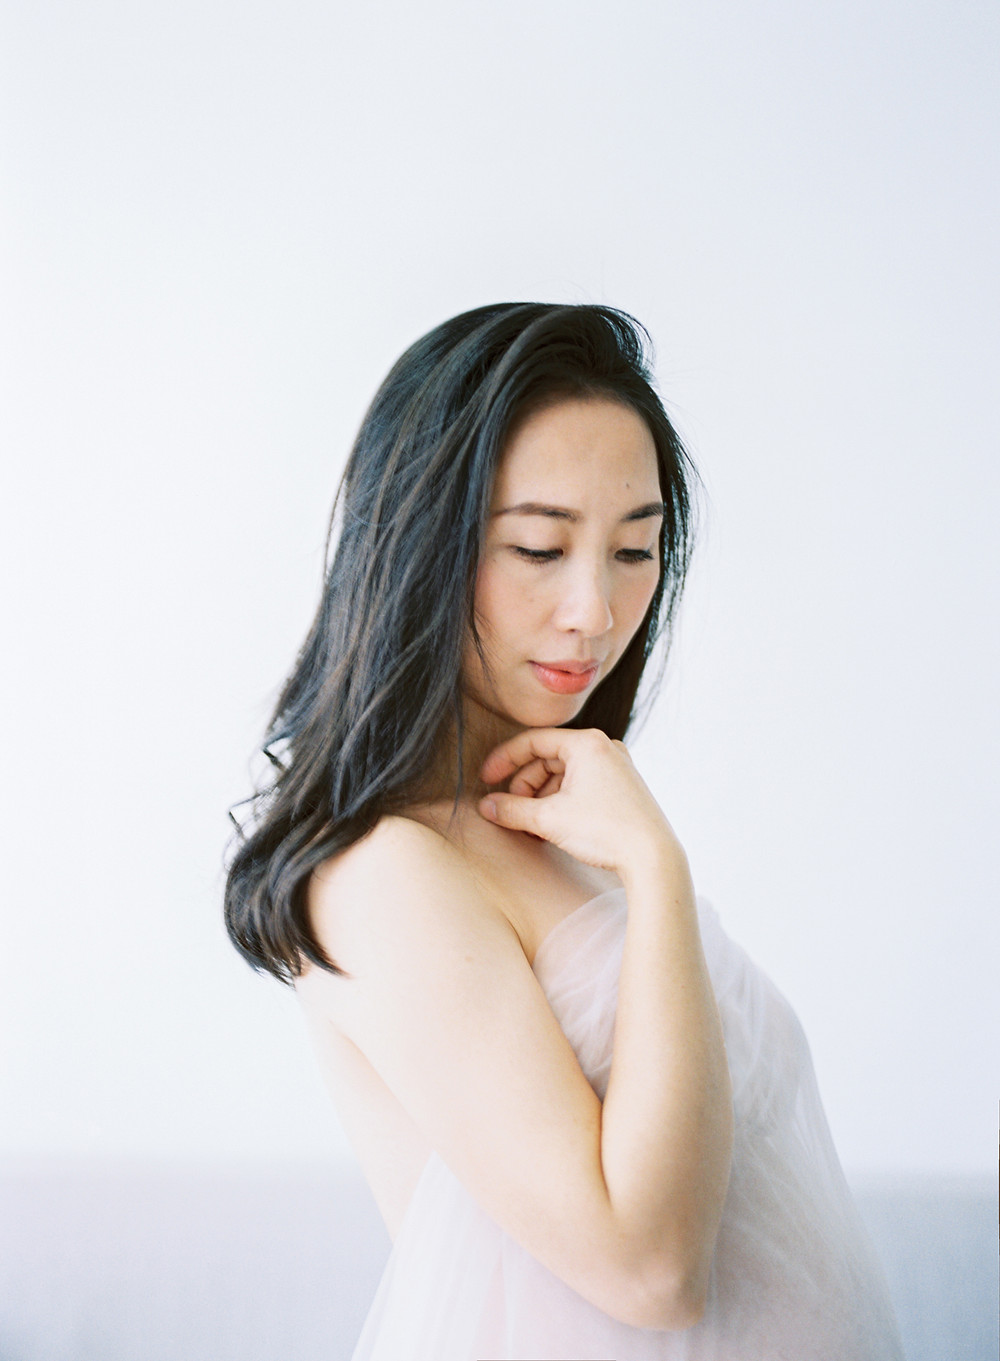 Maternity Boudoir Portrait-Nora 孕期閨房寫真 Arther Chen Photography